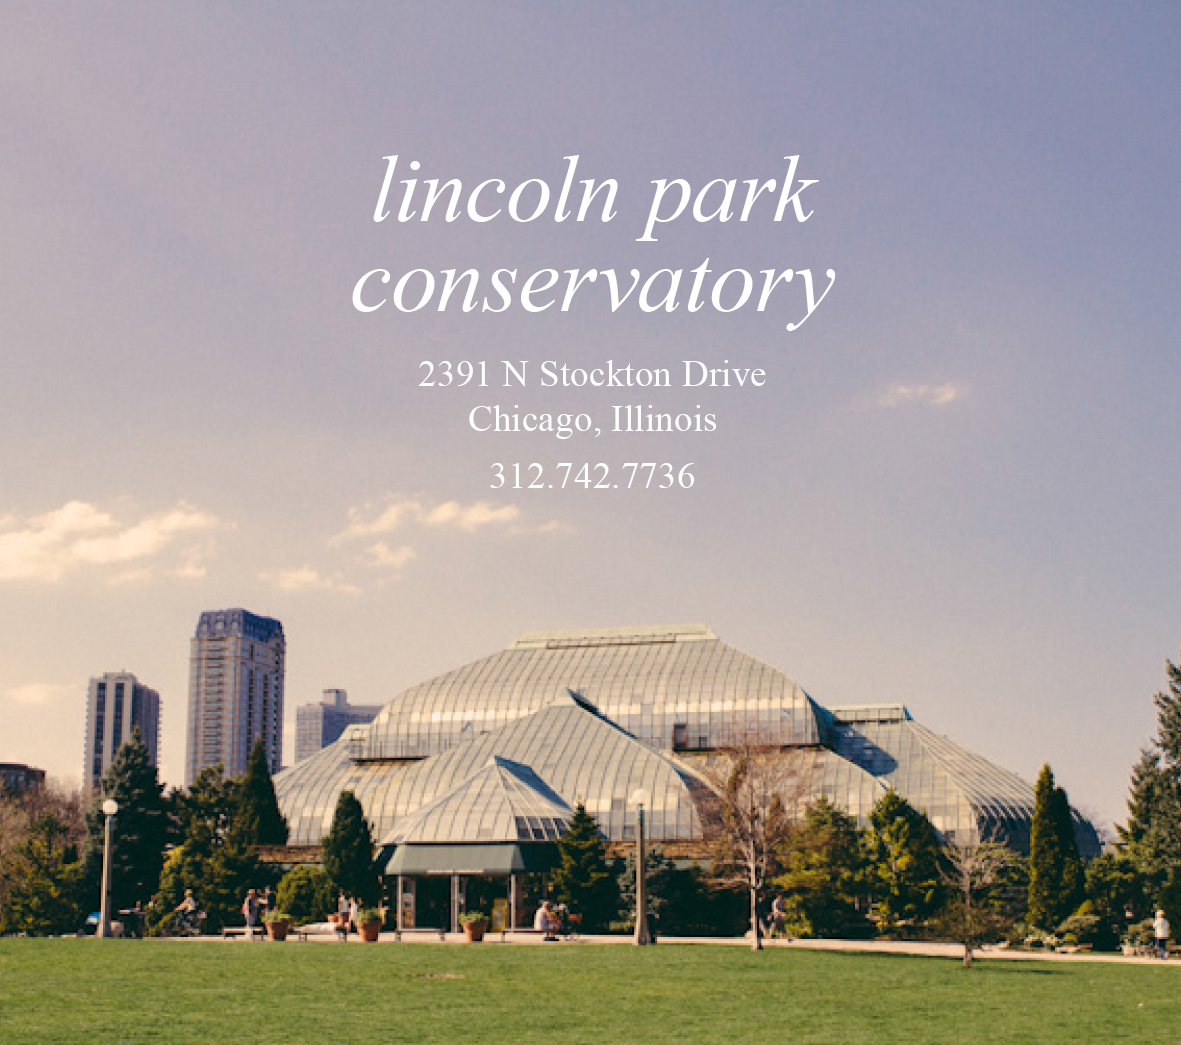 Lincoln Park Conservatory1